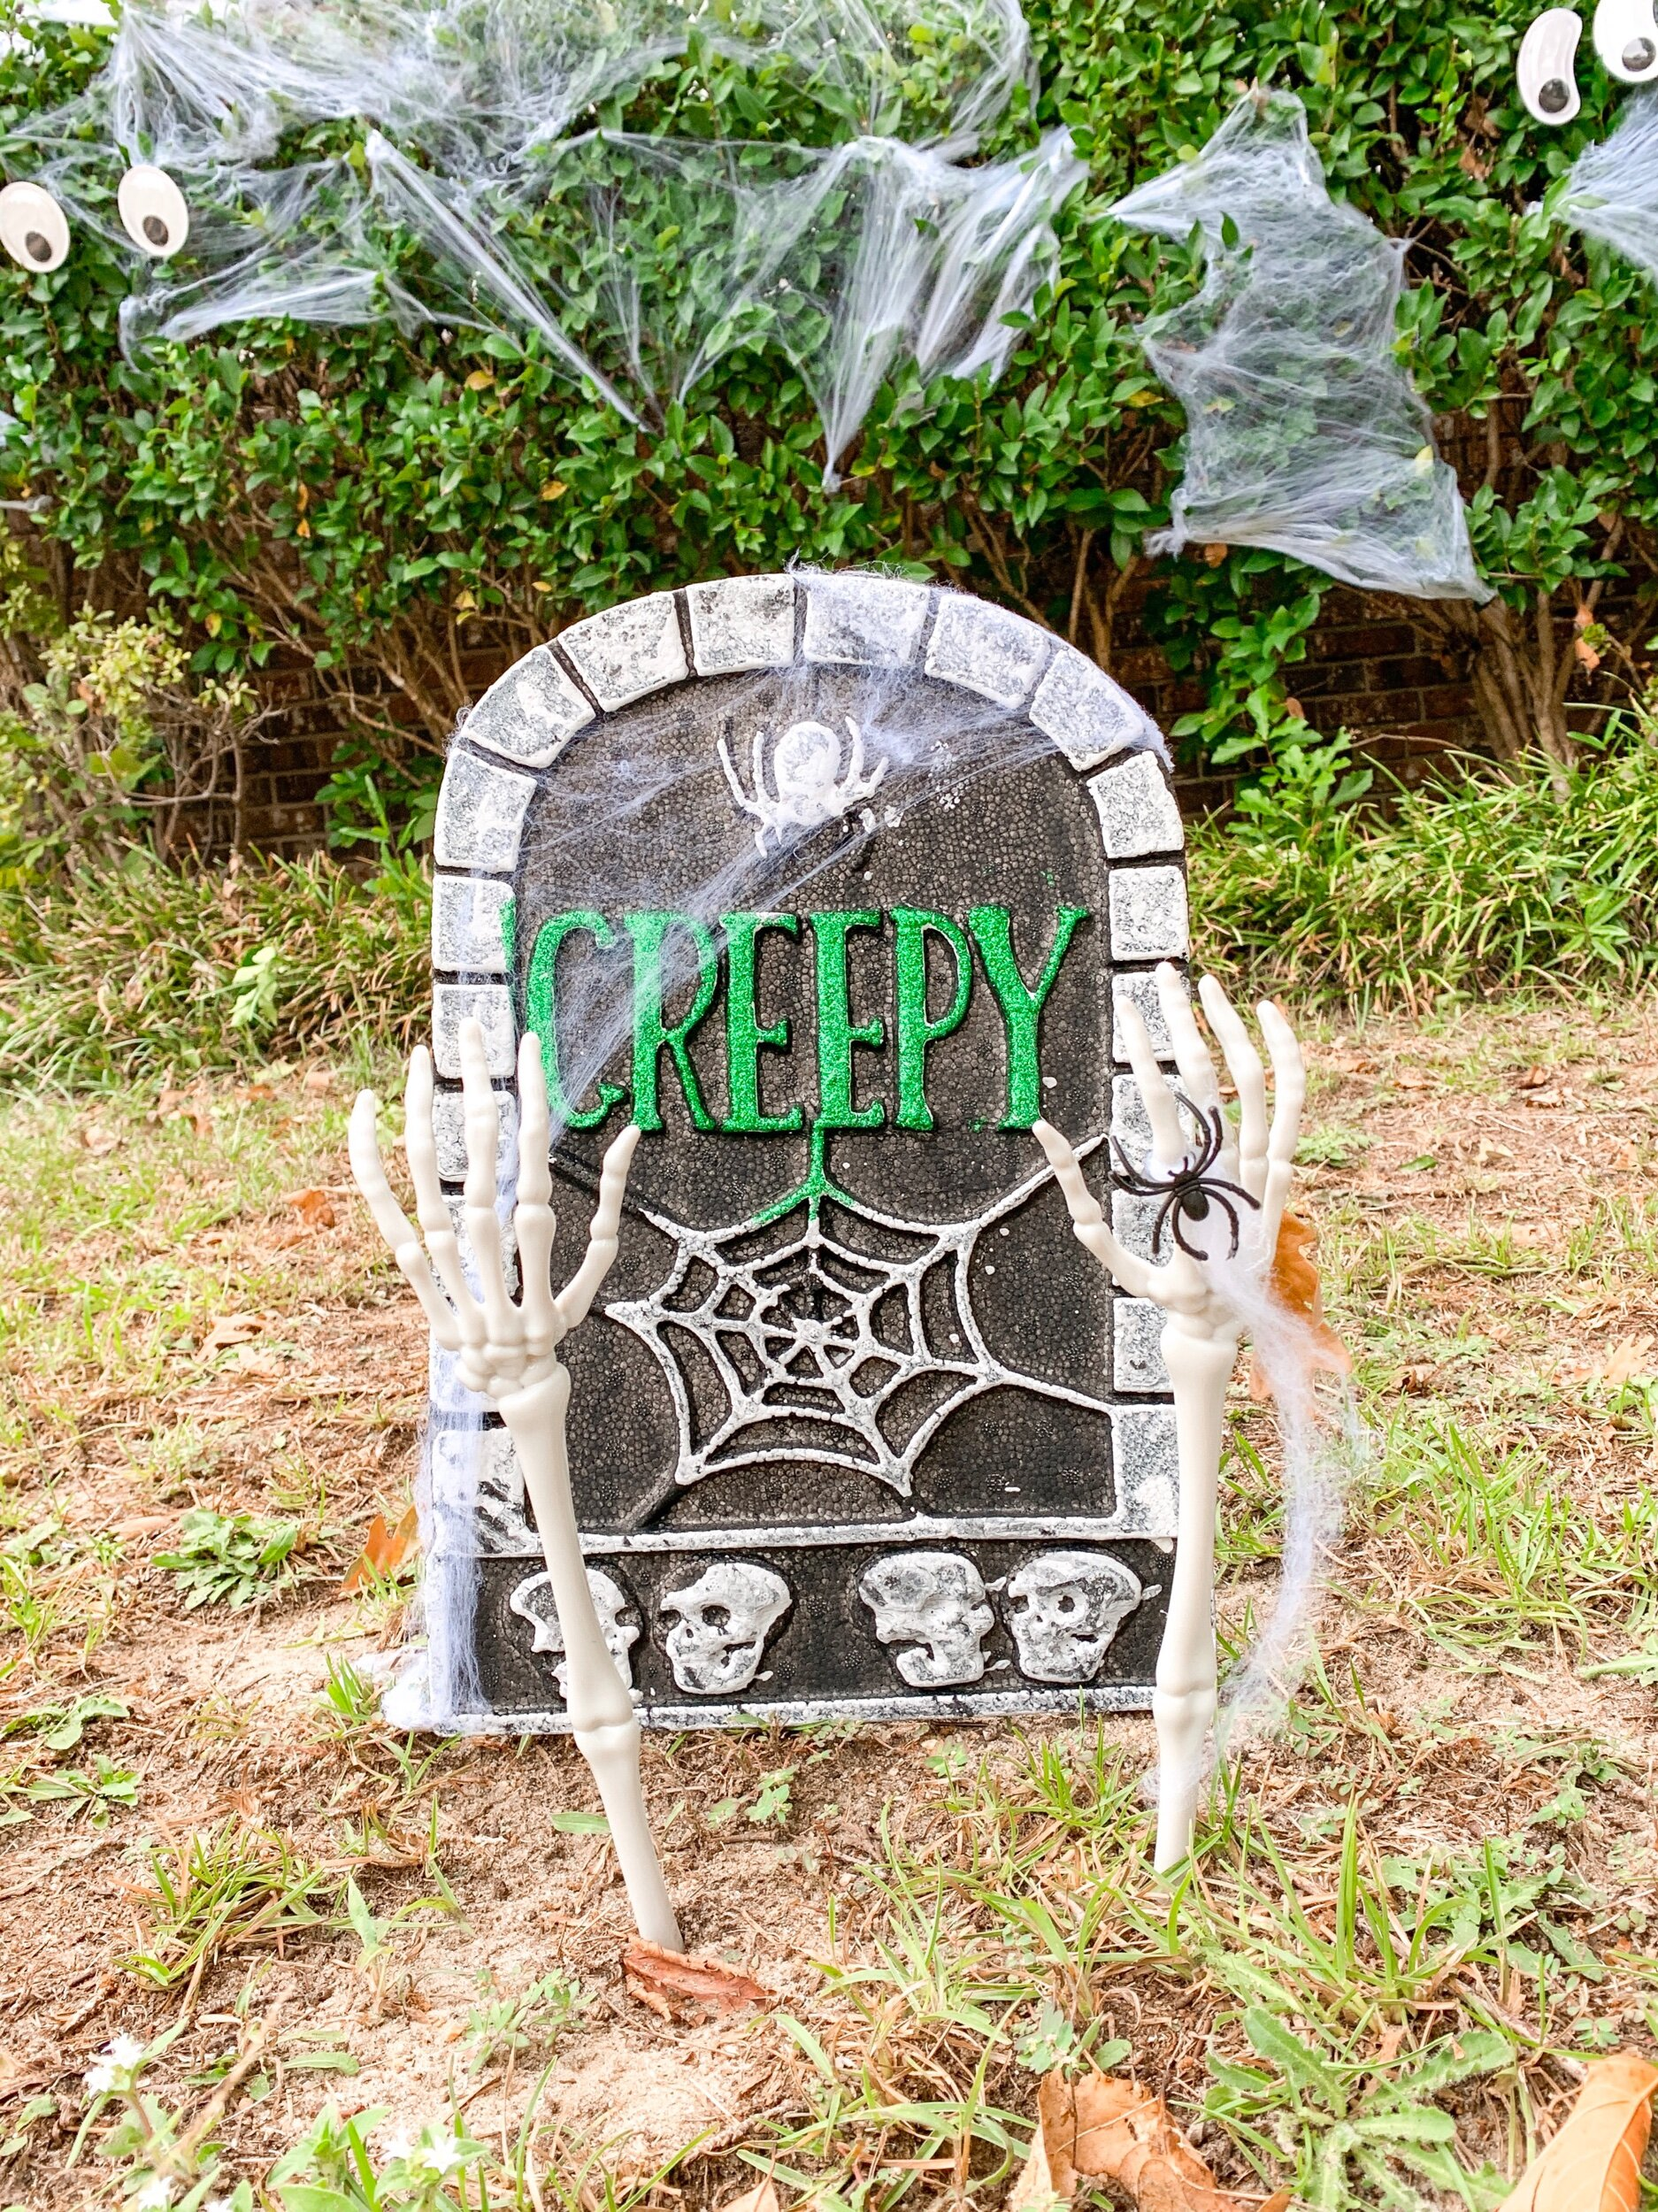 My favorite easy affordable Halloween decoration from the Dollar Tree!! $1 styrofoam gravestone , $1 skeleton arms (actually tongs), $1 spider webbing with spiders. $3 is NOT a bad deal.